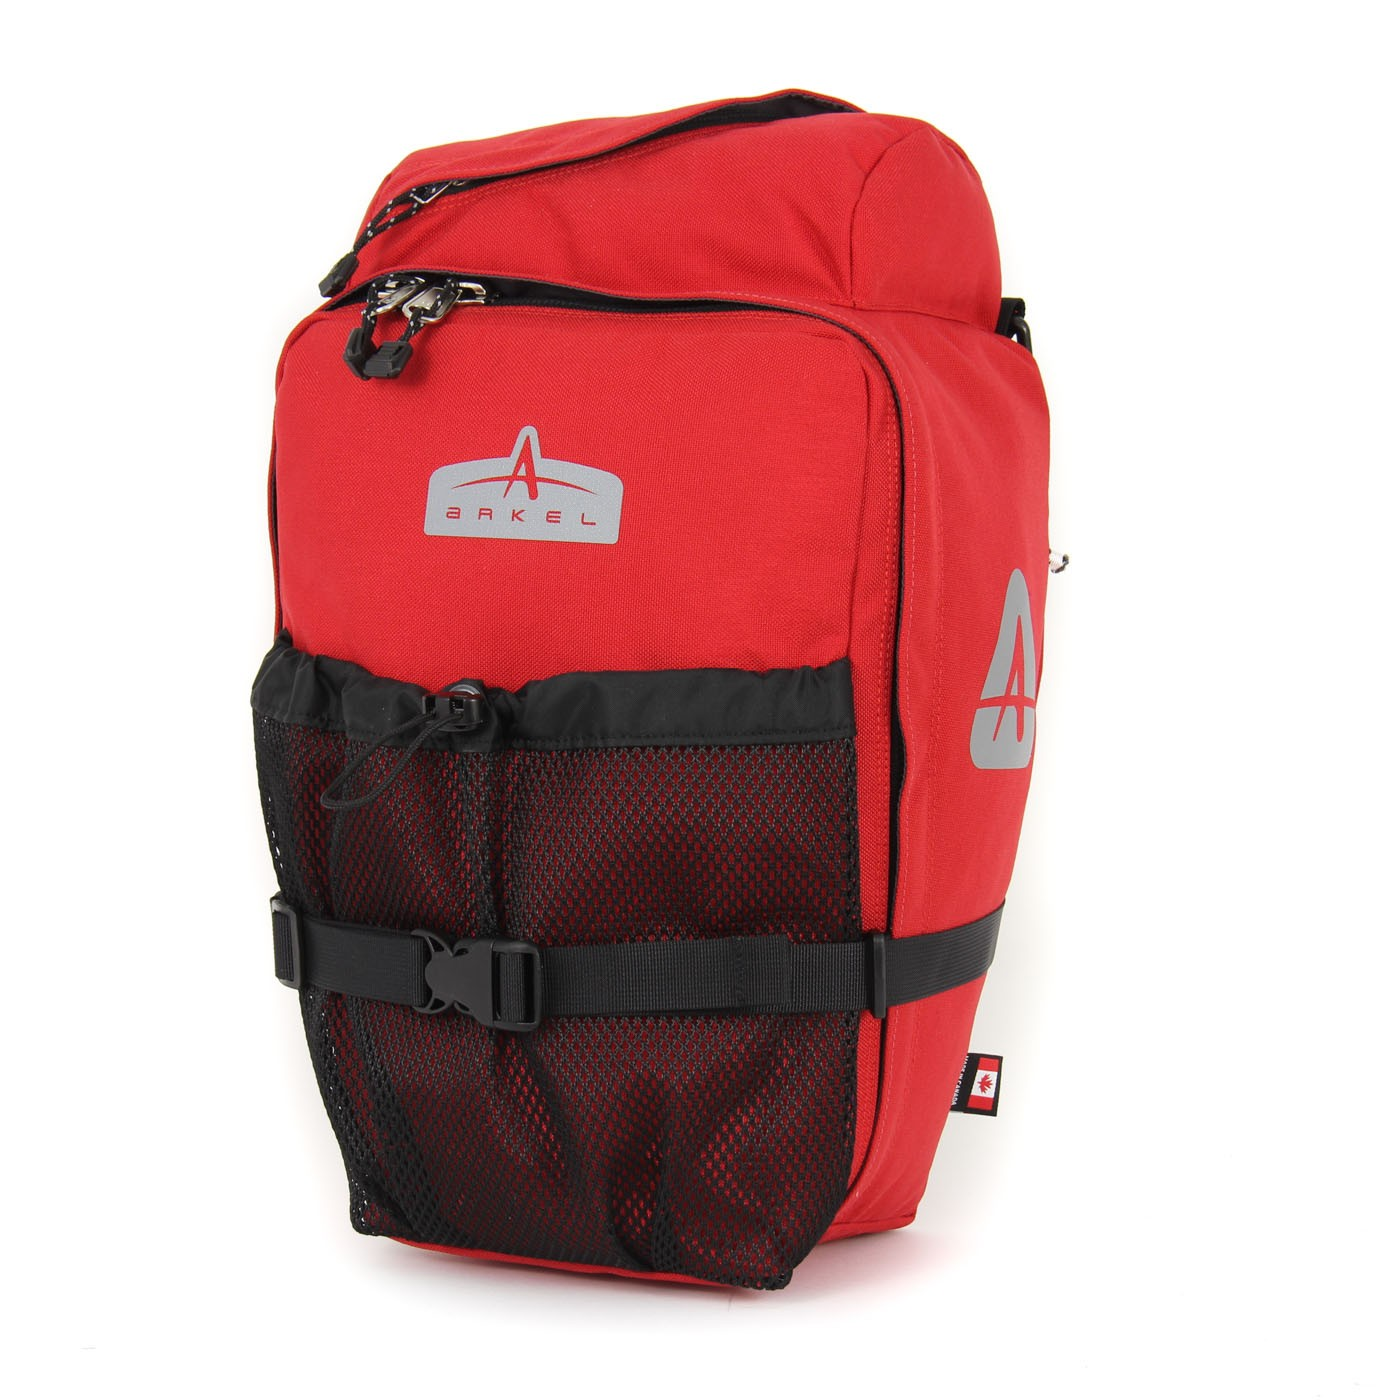 Arkel T-28 Panniers - A Lite Touring front or rear bicycle